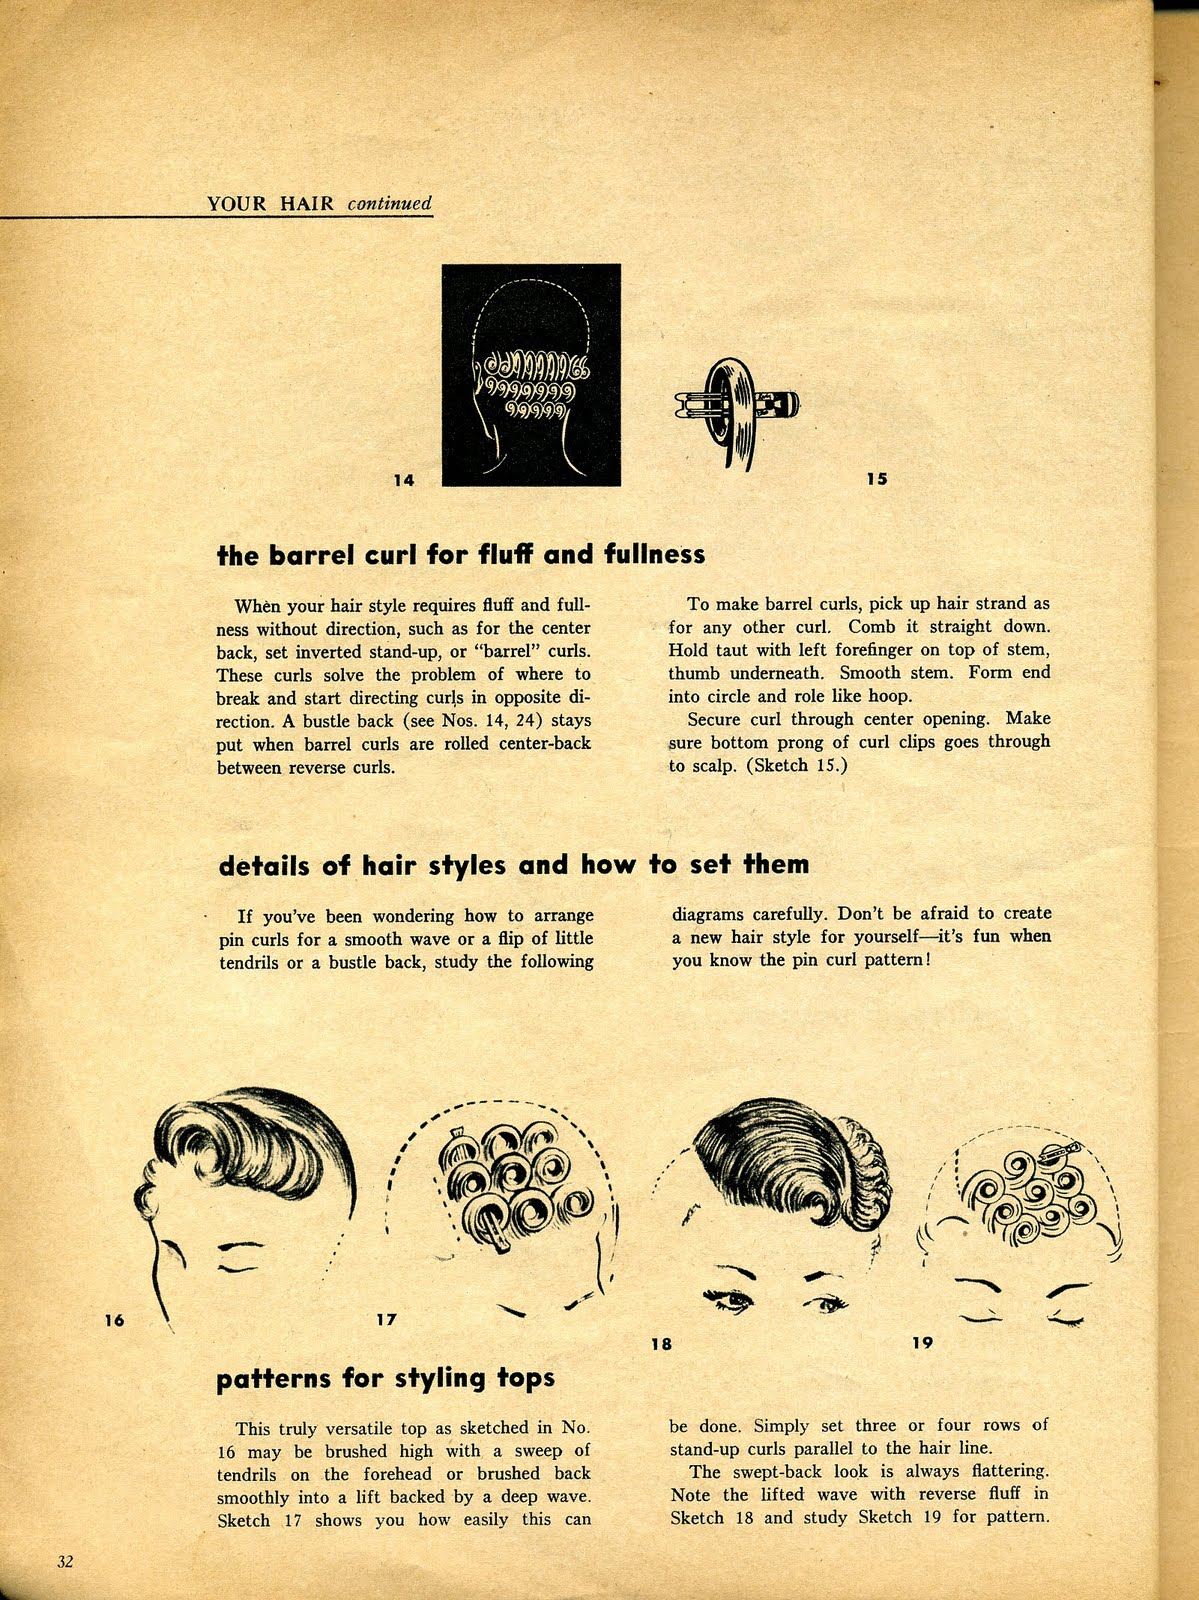 pin curl diagram curiosity rover emily 39s vintage visions great hair fridays setting